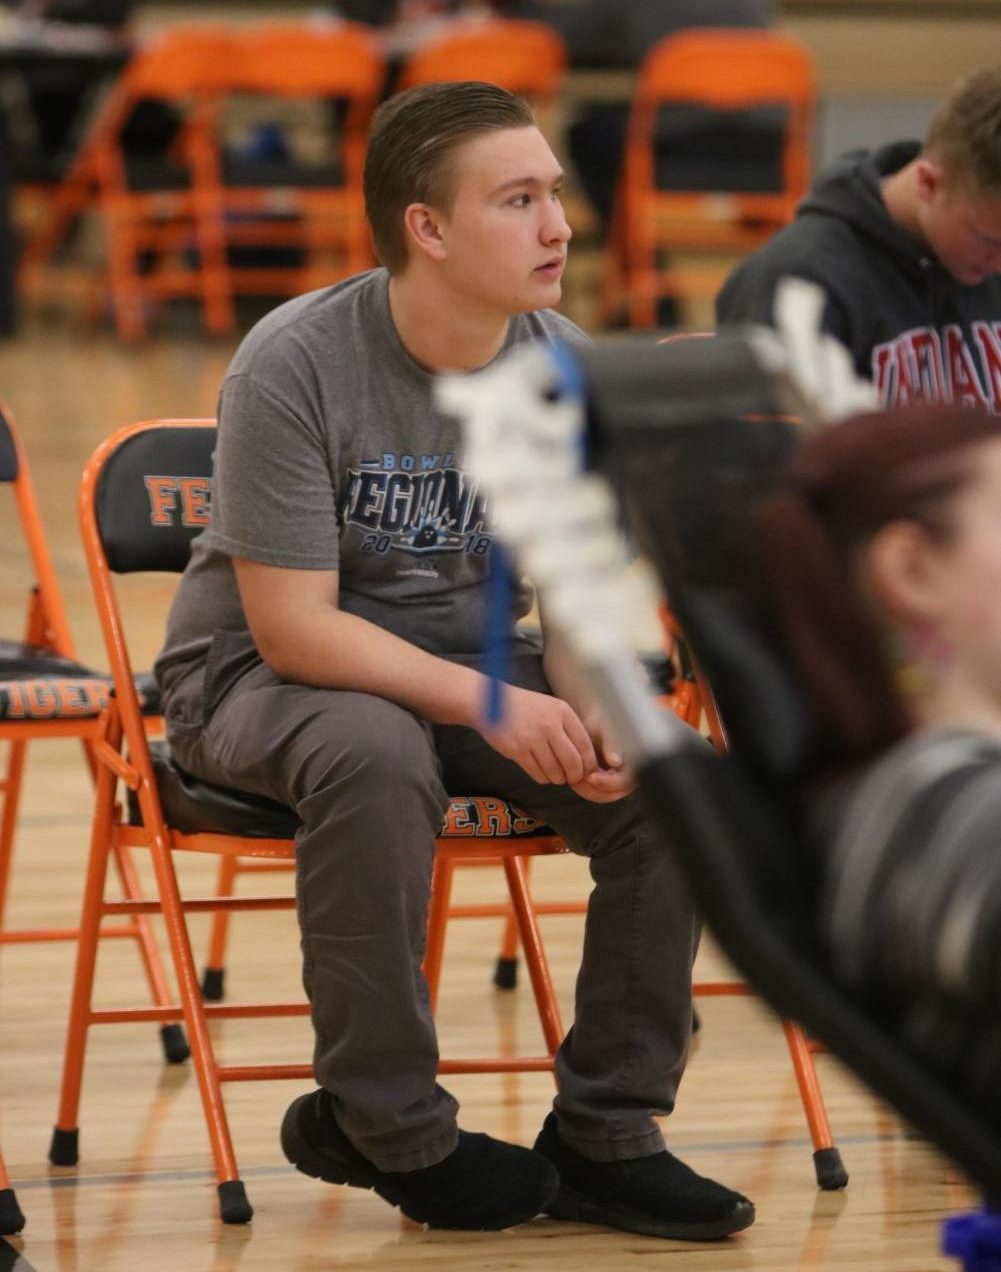 While participating in the blood drive, sophomore Tate Temrowski waits for his name to be called. On March 21, Michigan Blood hosted a blood drive at Fenton High.